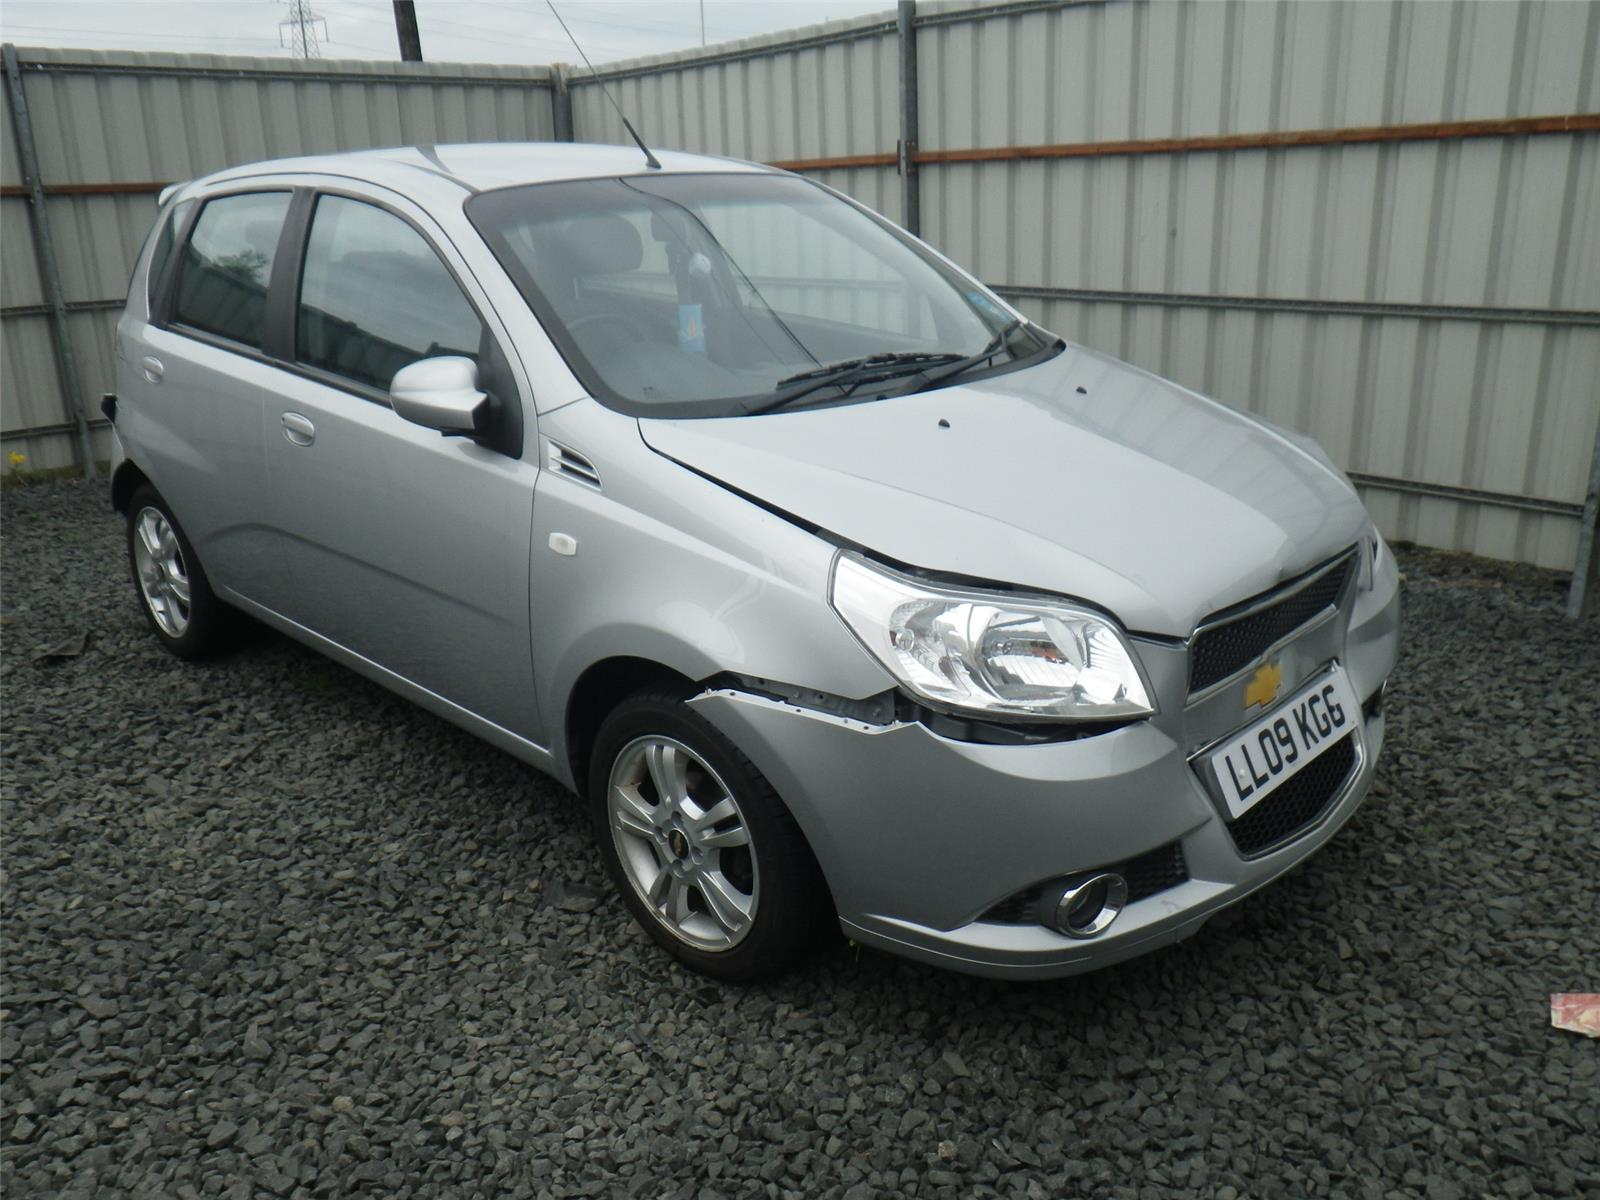 chevrolet aveo 2008 to 2011 engine petrol manual for sale from rh scbvehicledismantlers co uk chevrolet aveo 2009 user manual chevrolet aveo 2009 repair manual